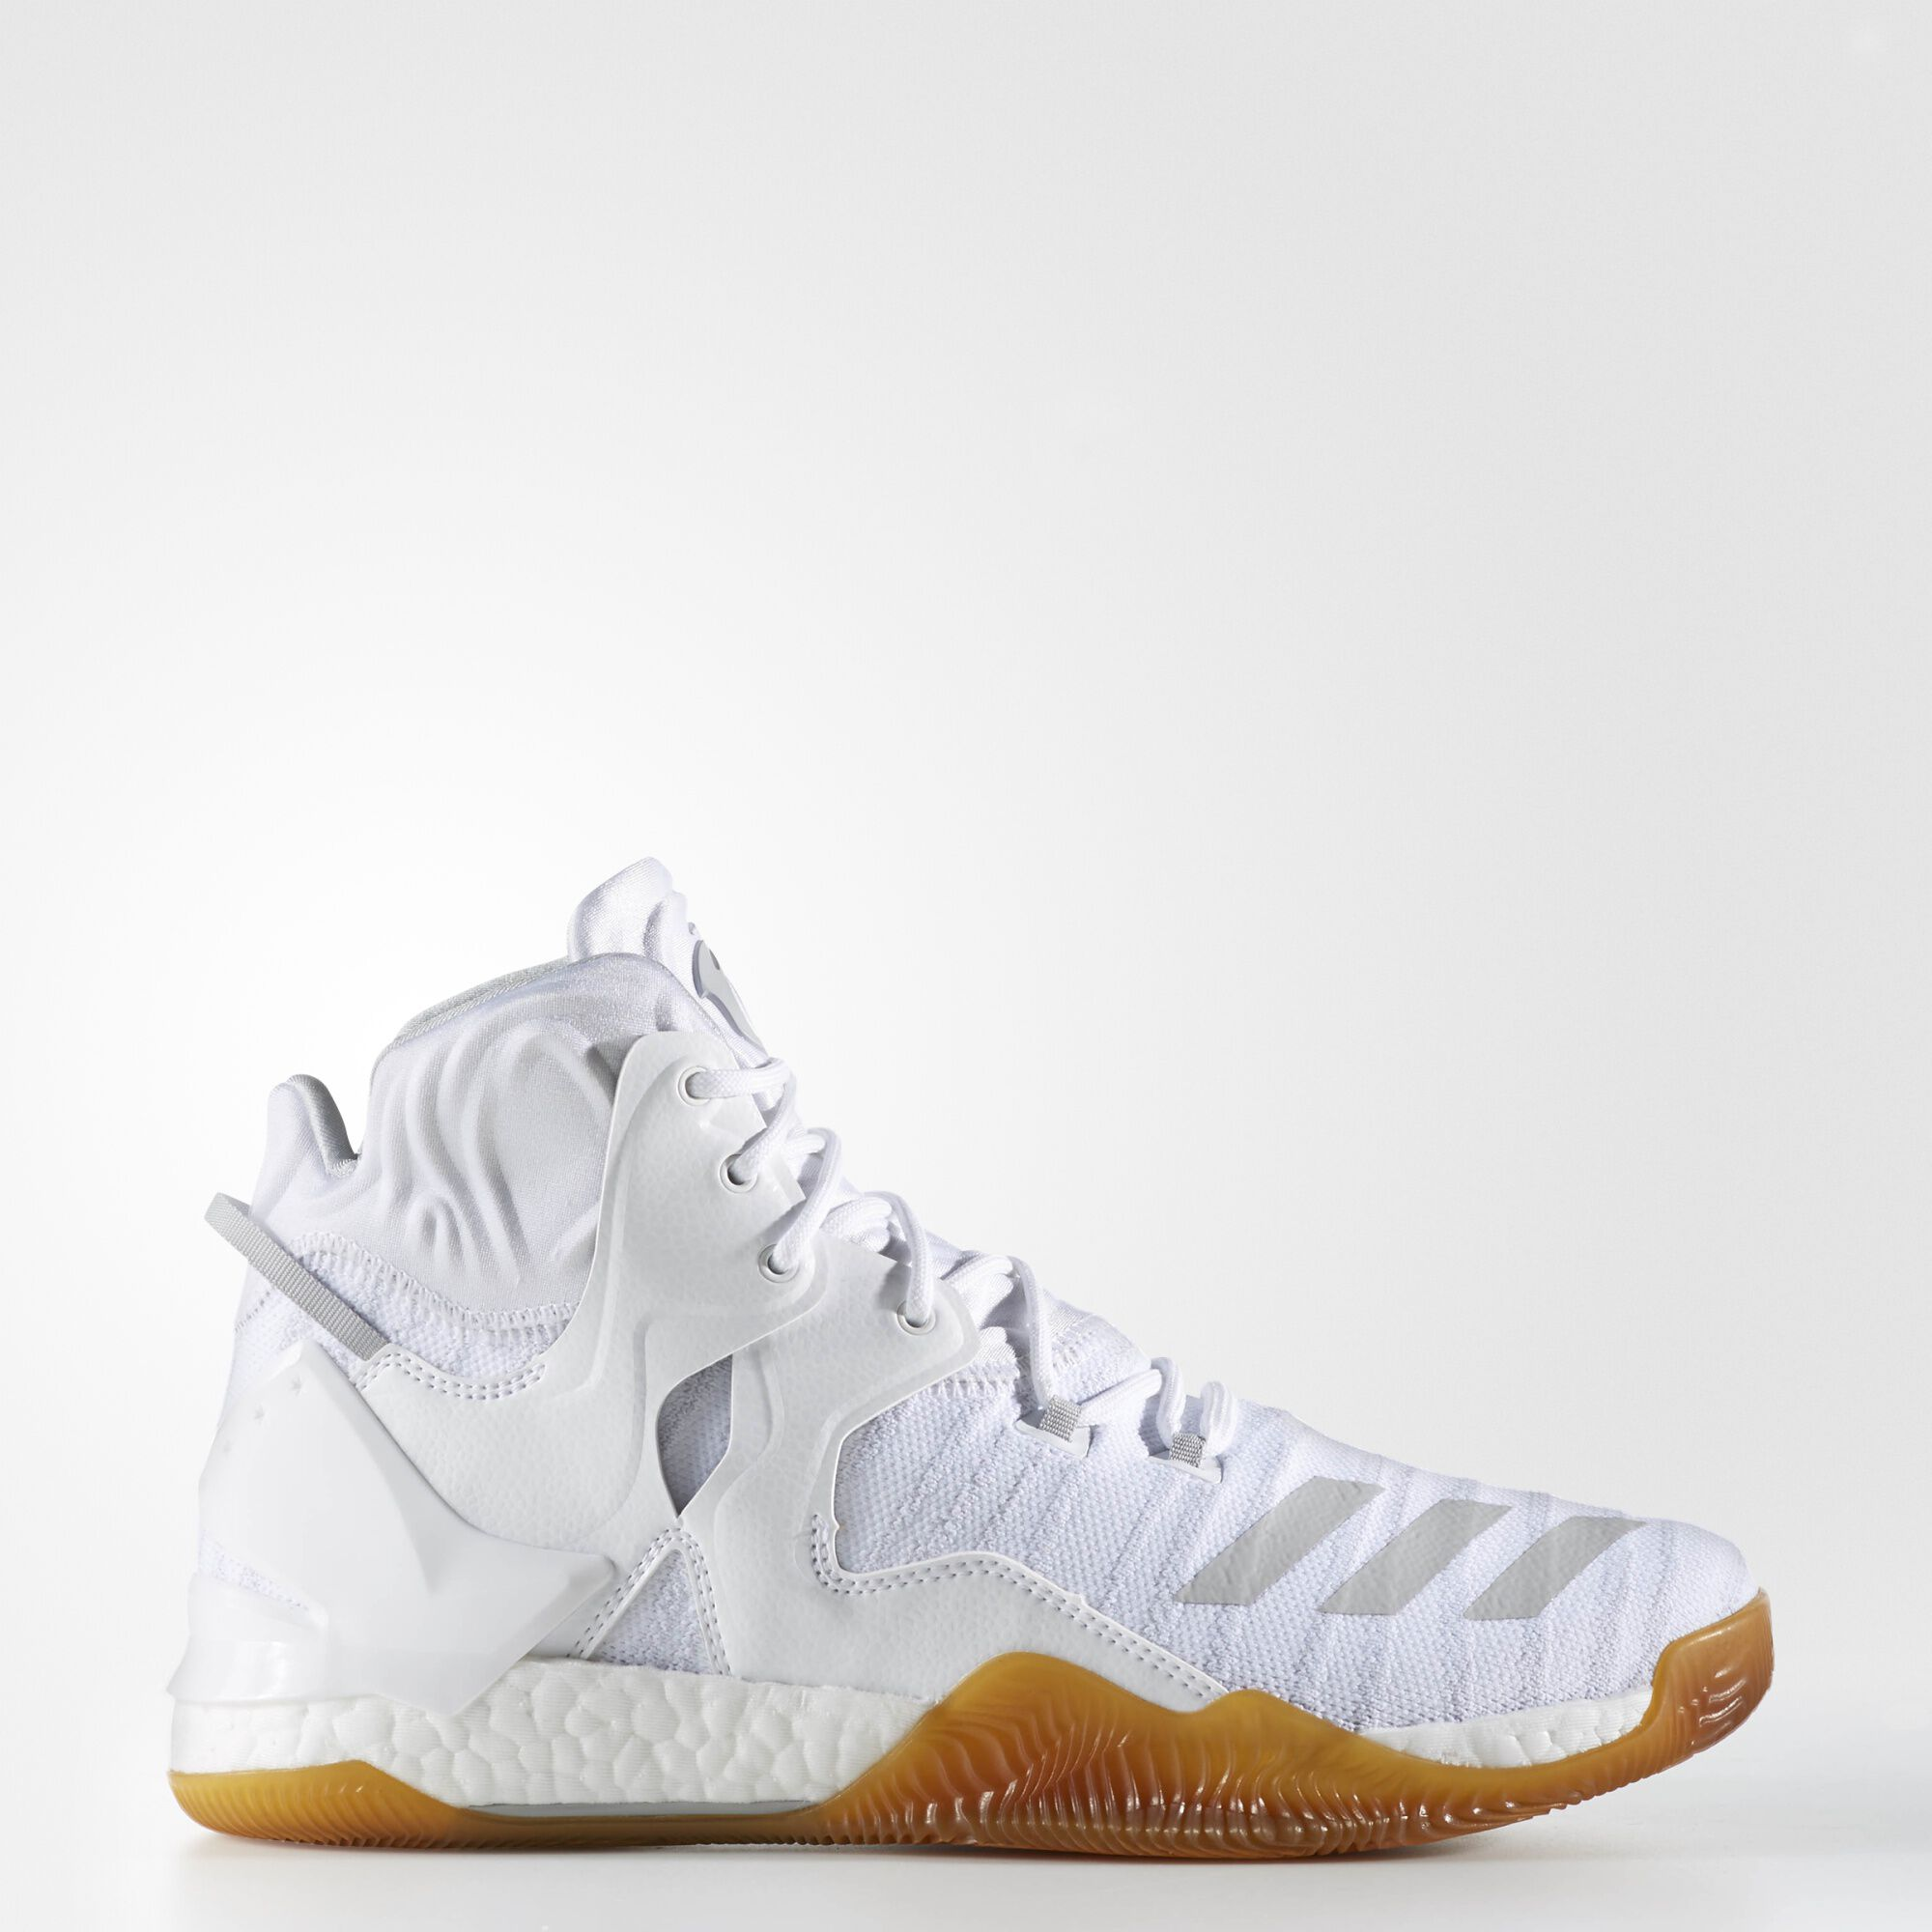 Adidas shirt design your own - Adidas D Rose 7 Primeknit Shoes Running White Ftw Running White Ftw Cardboard